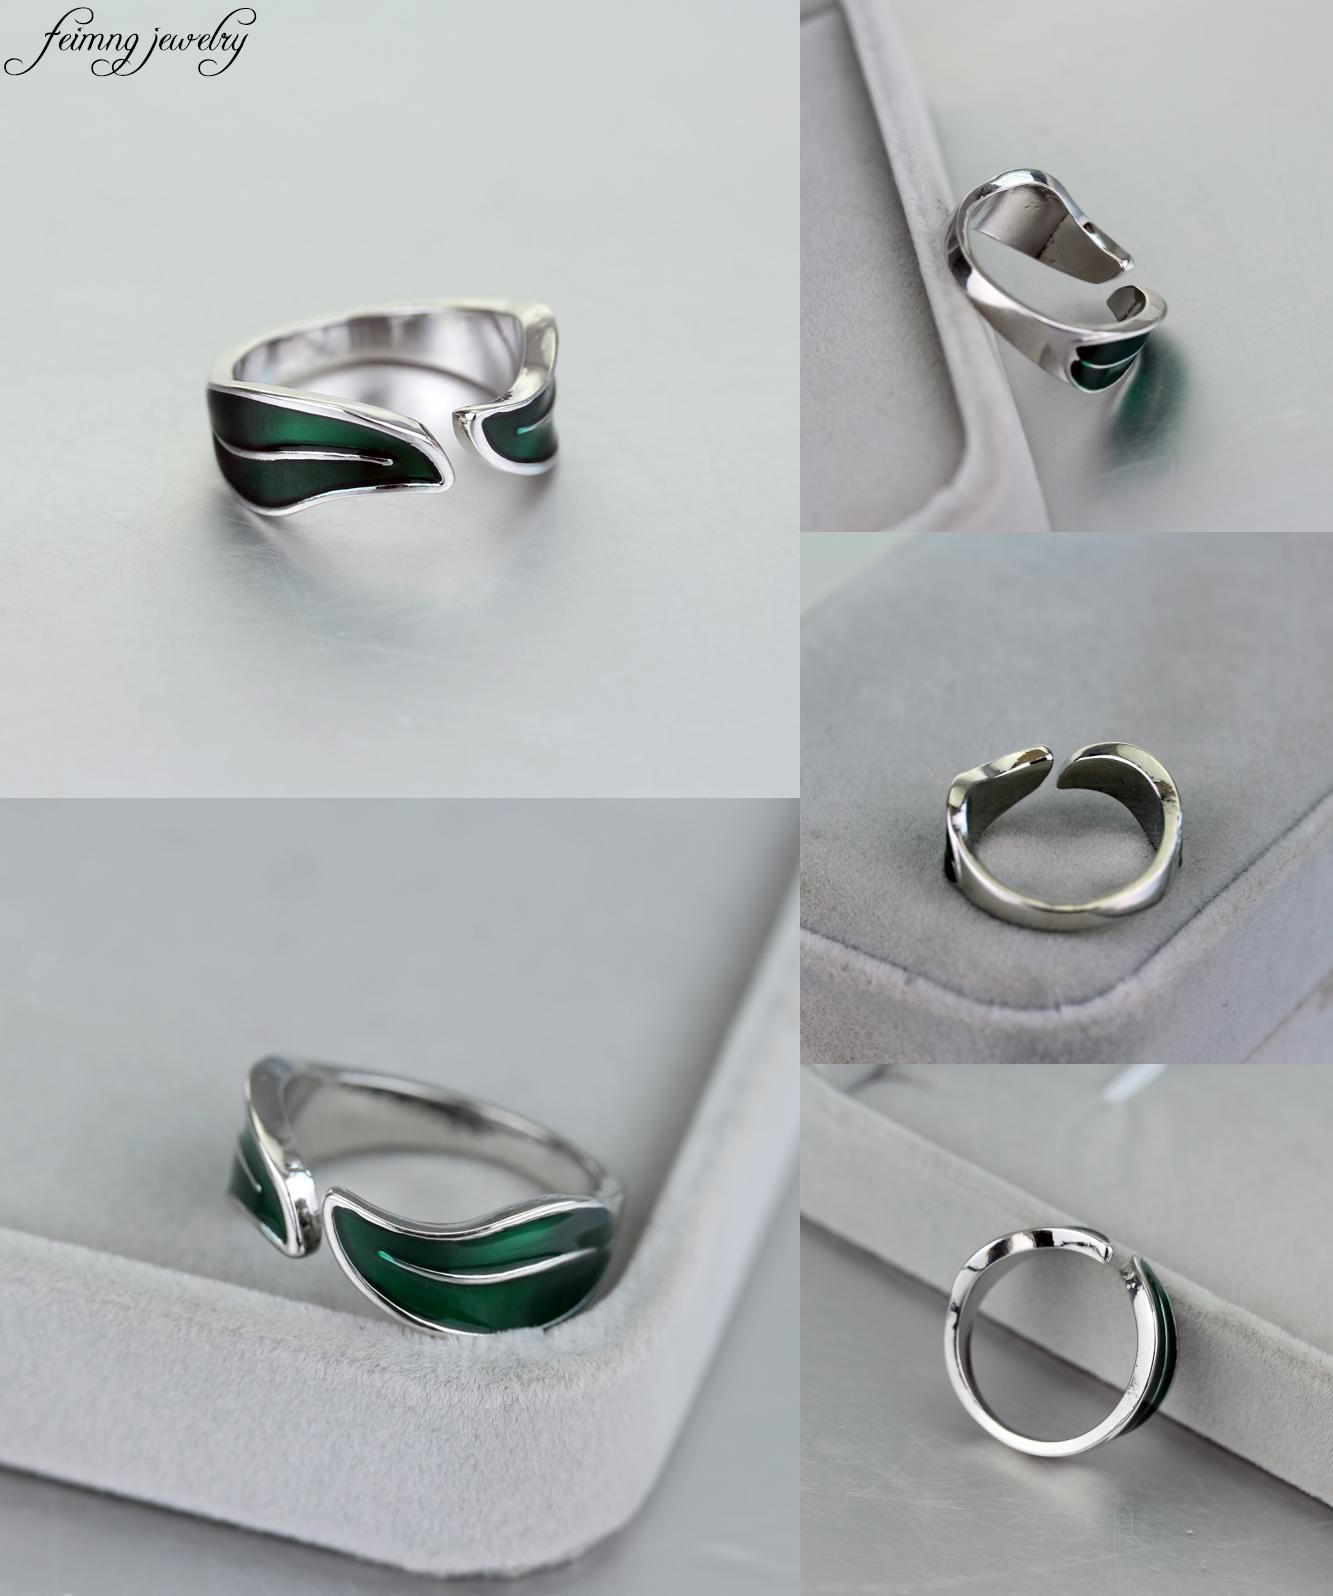 Visit to Buy feimeng jewelry Punk Adjustabe Leaf Ring ...